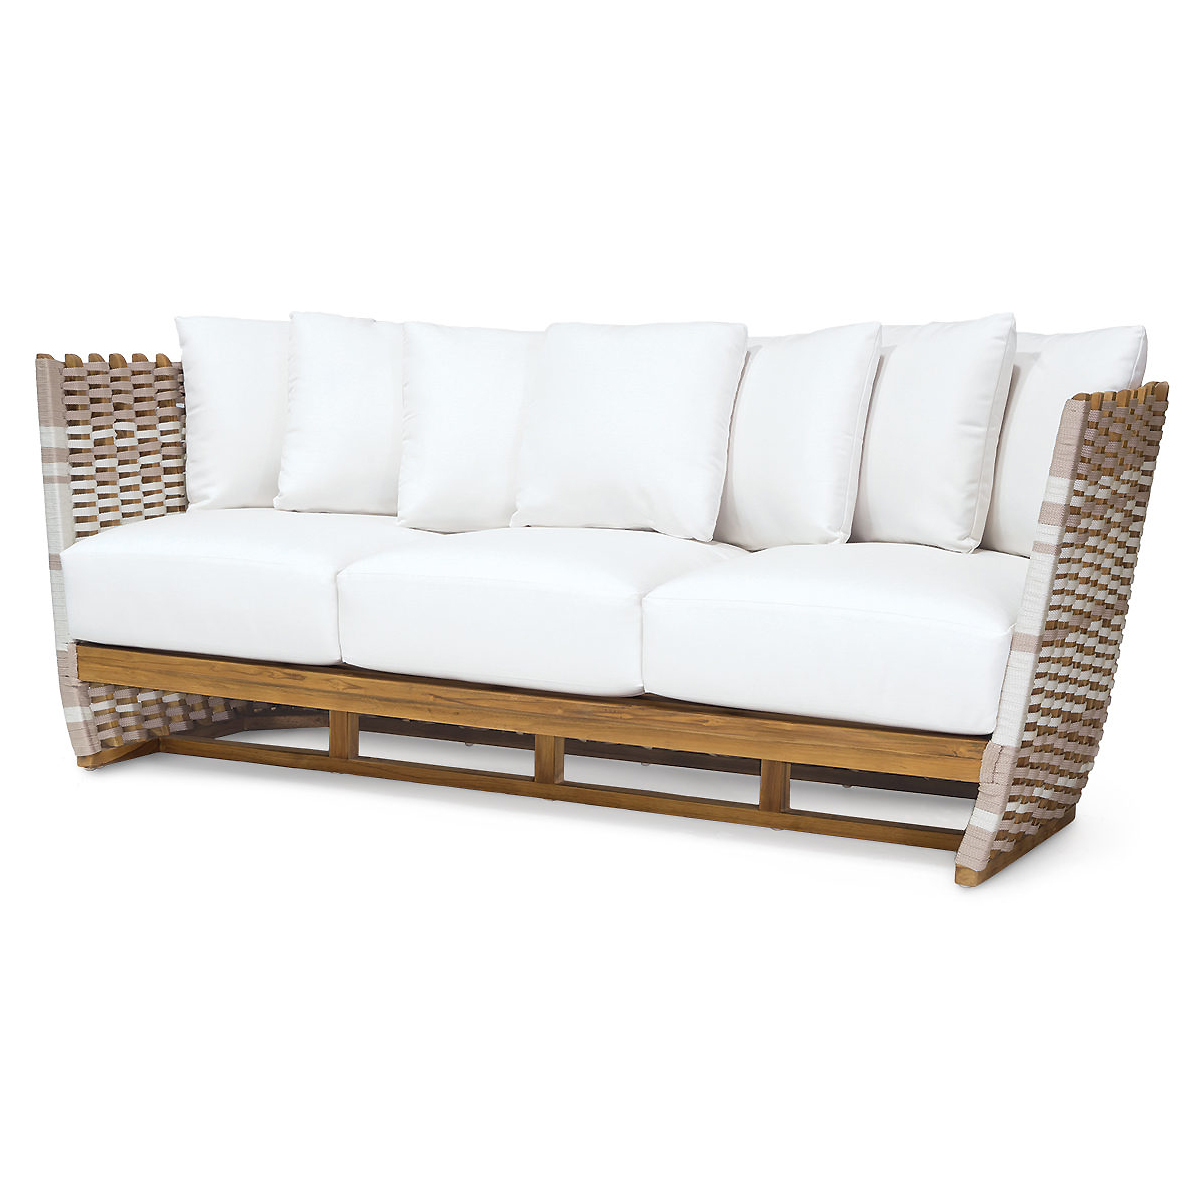 Hines Modern Classic Rope Wrapped Outdoor Sofa